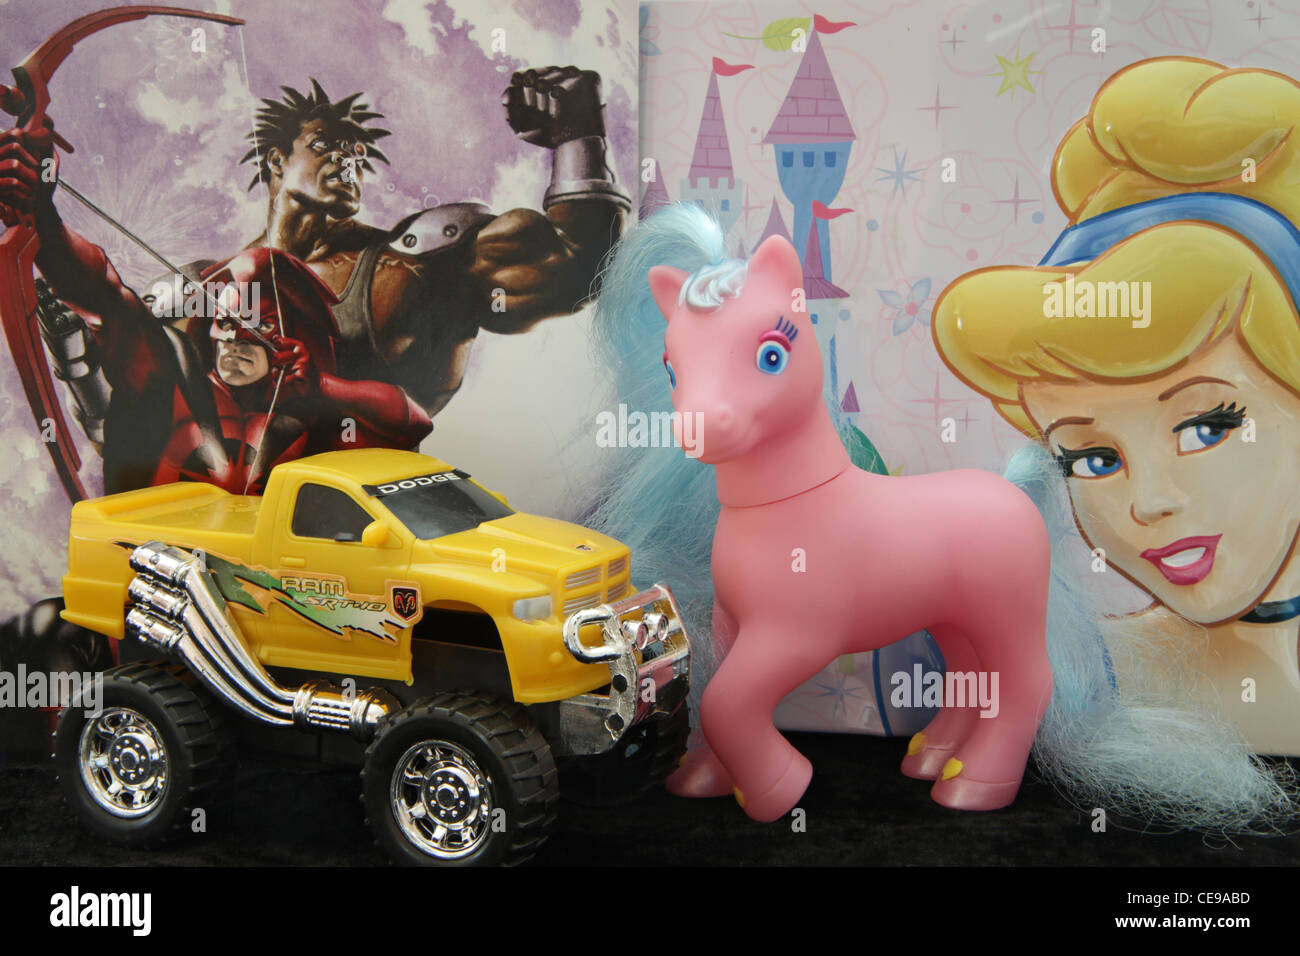 Toys representing extremes of stereotypical masculinity and femininity. - Stock Image